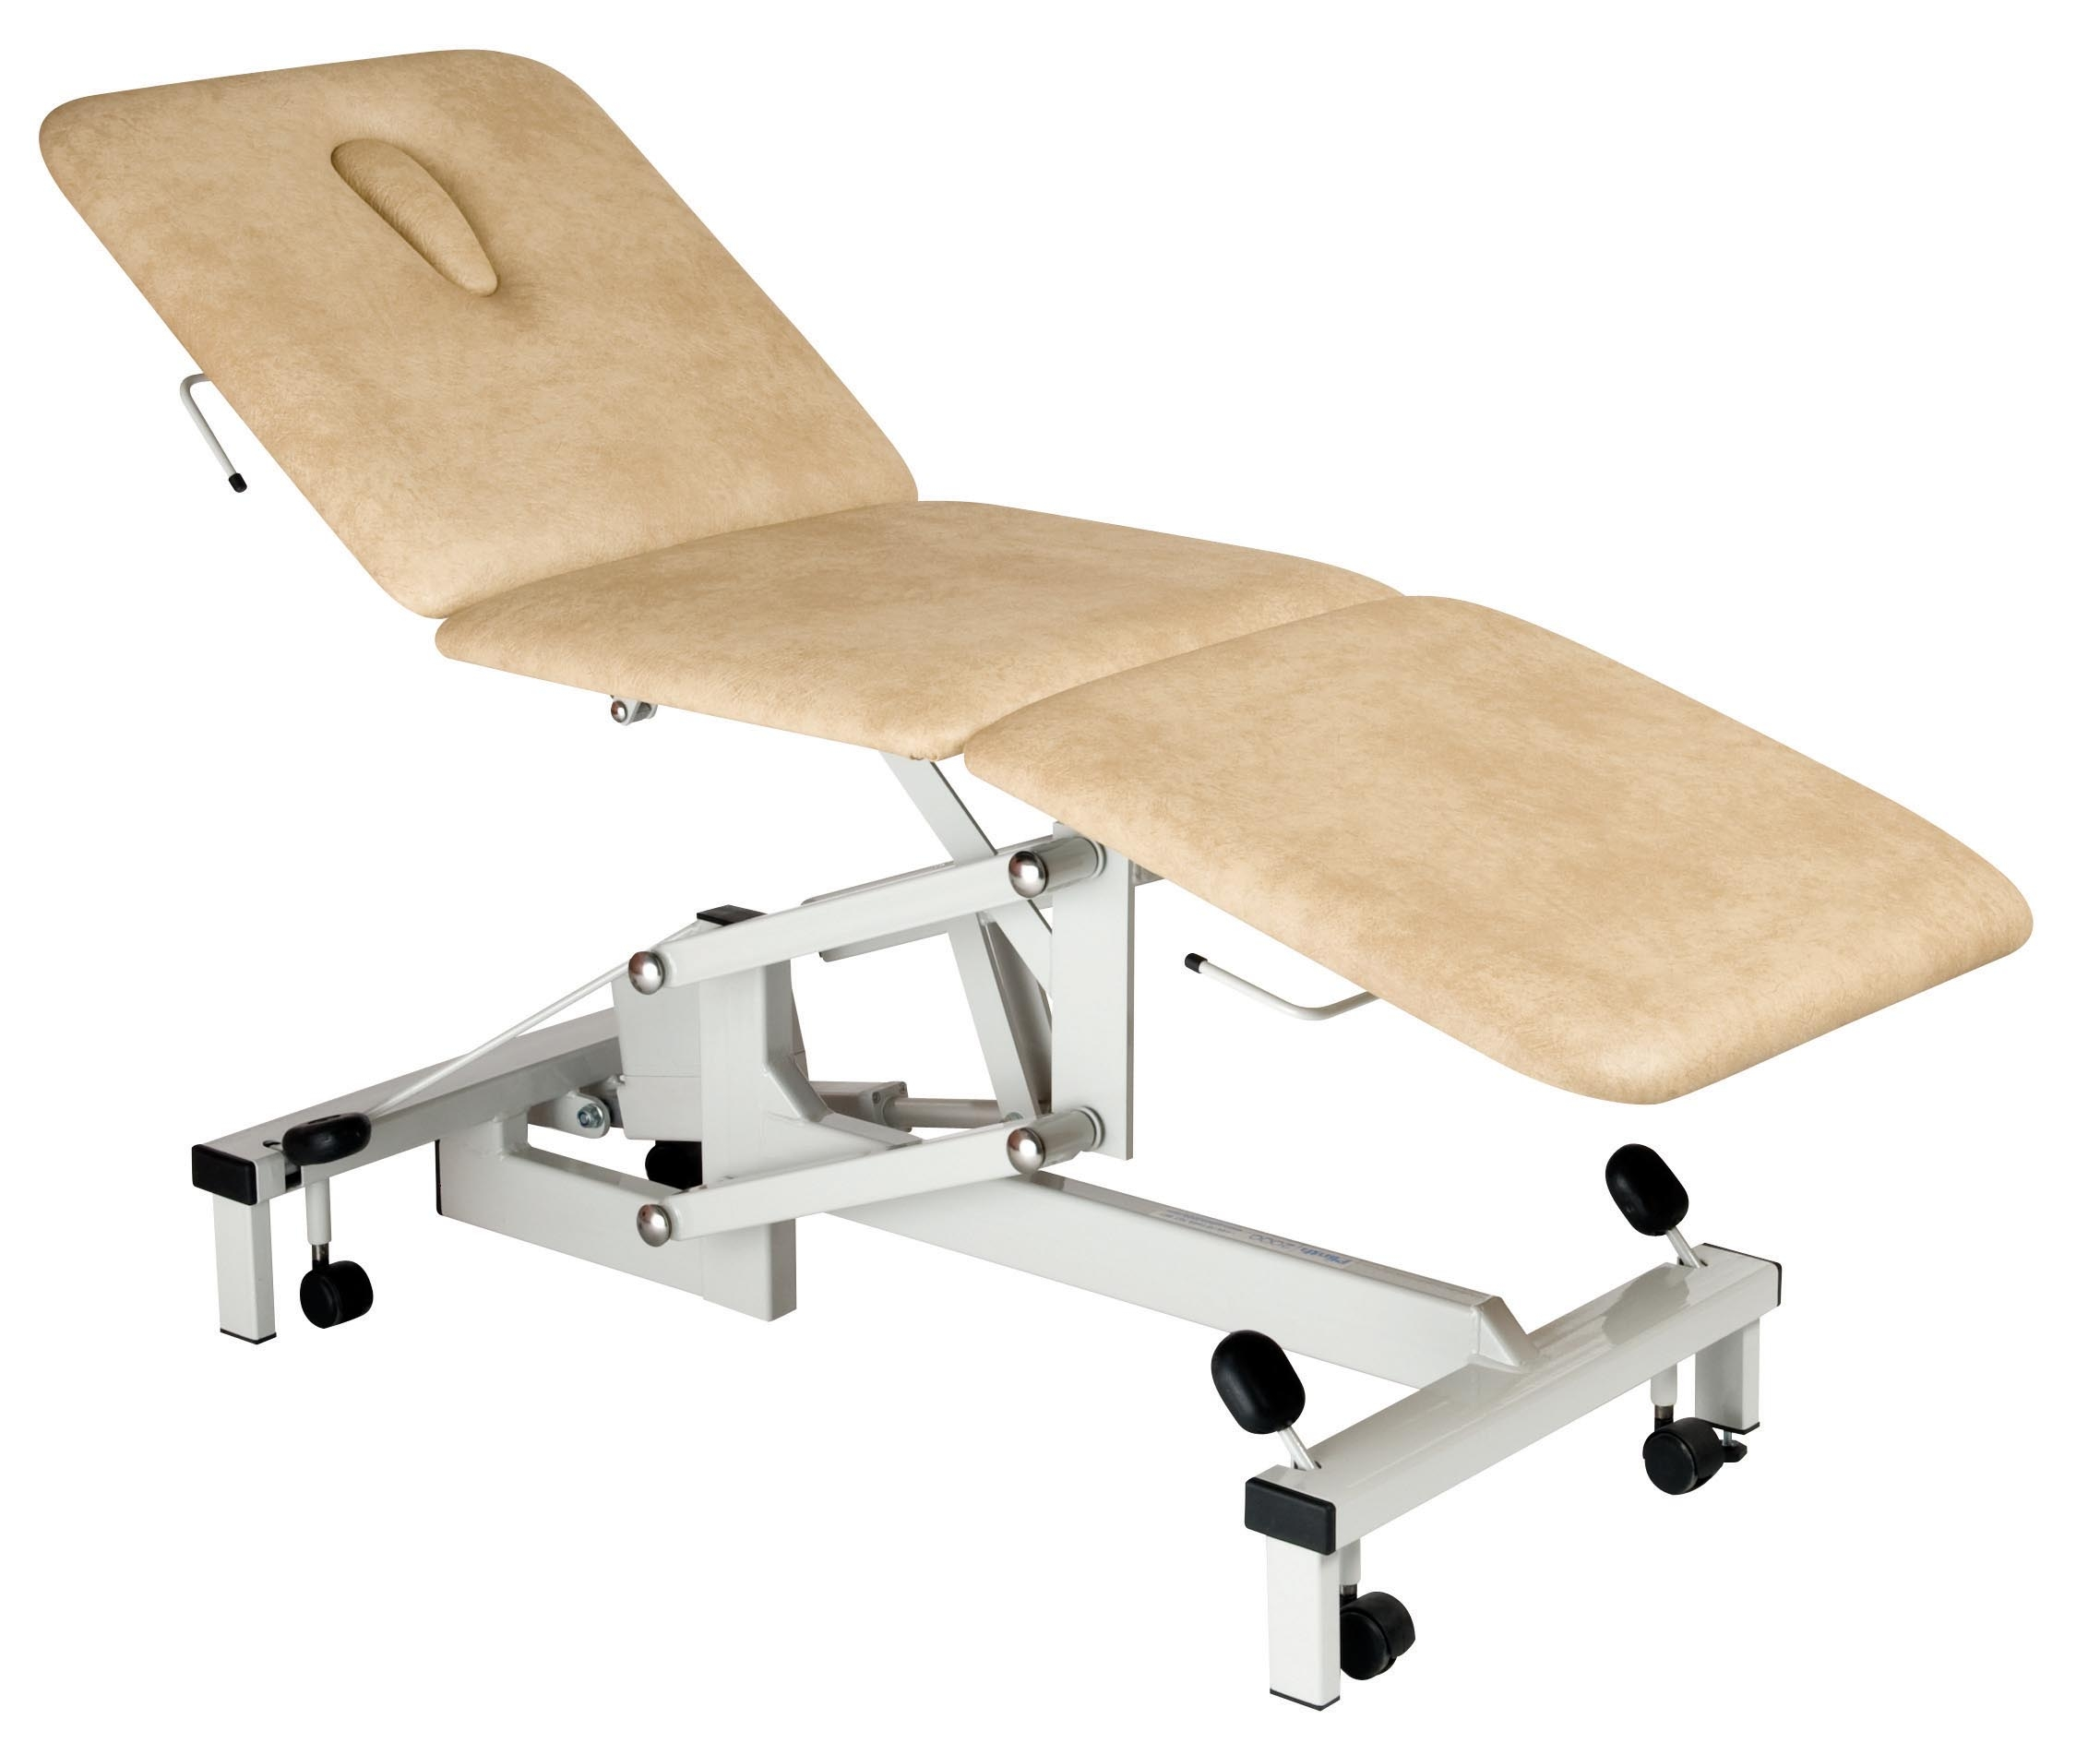 Hydraulic Massage Bed : Plinth hydraulic section couch massage table